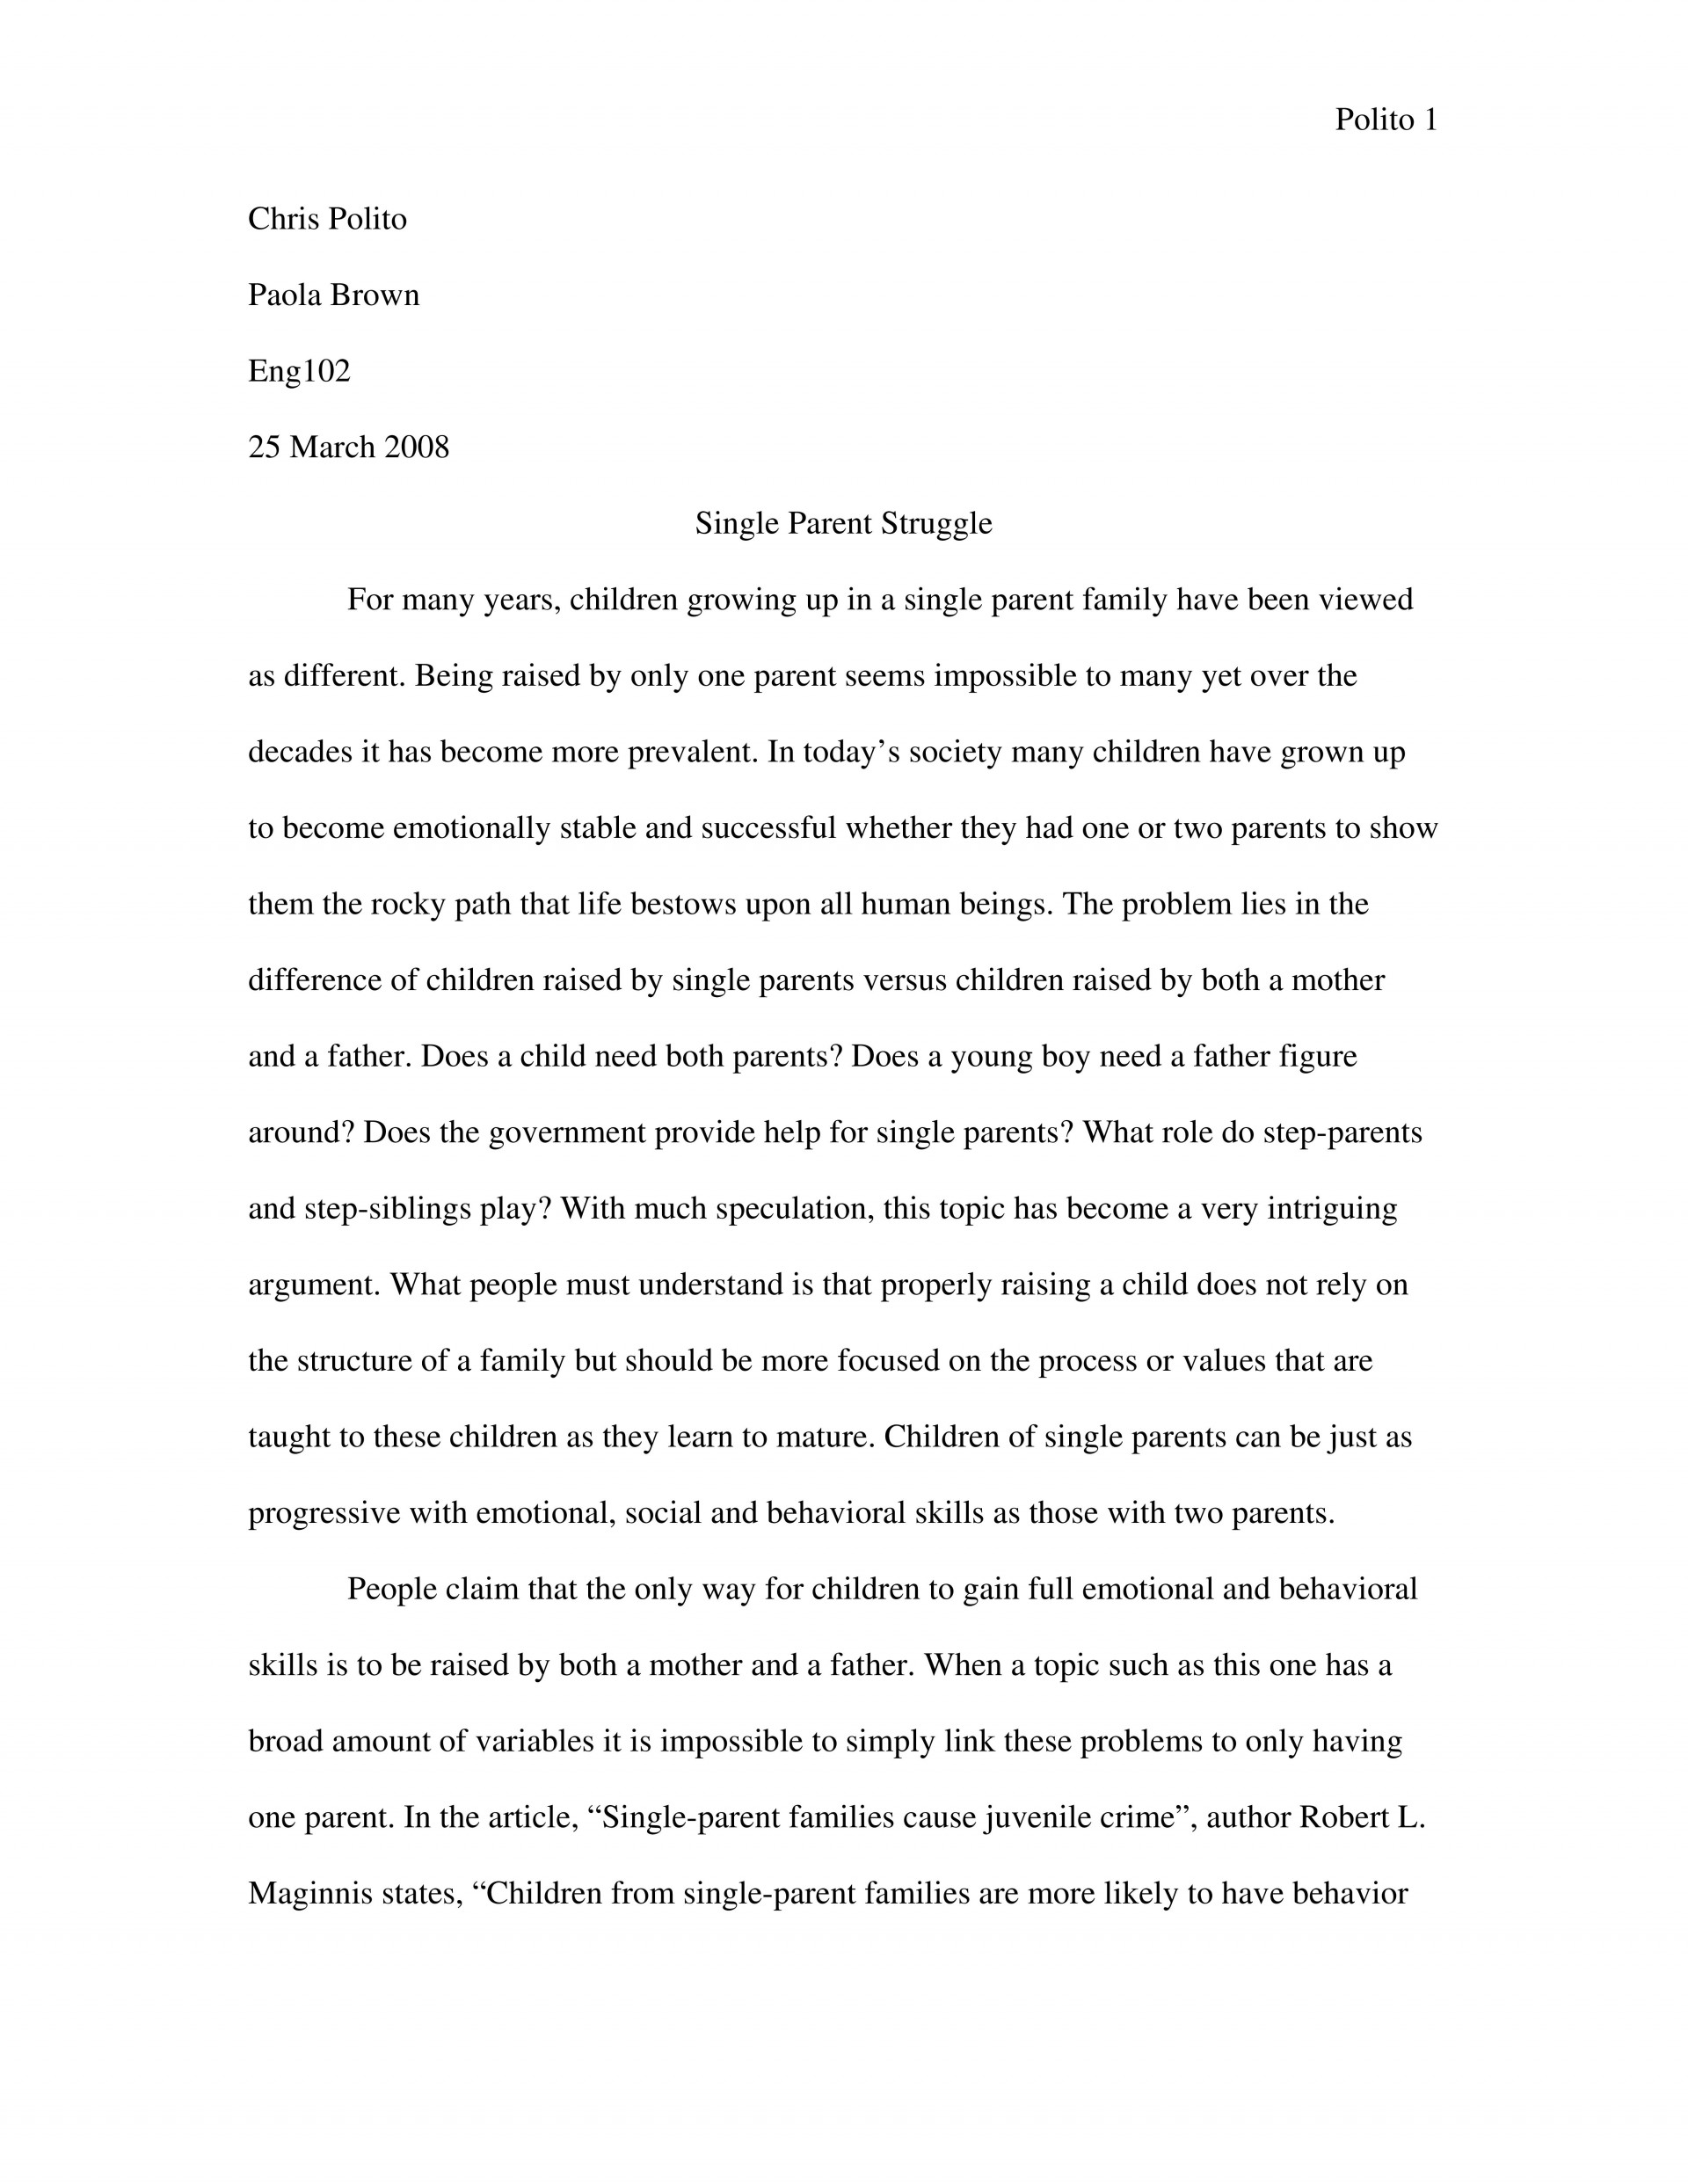 008 Essay Example Expository Samples Sample 2 Impressive Theme Examples High School For 7th Grade 1920